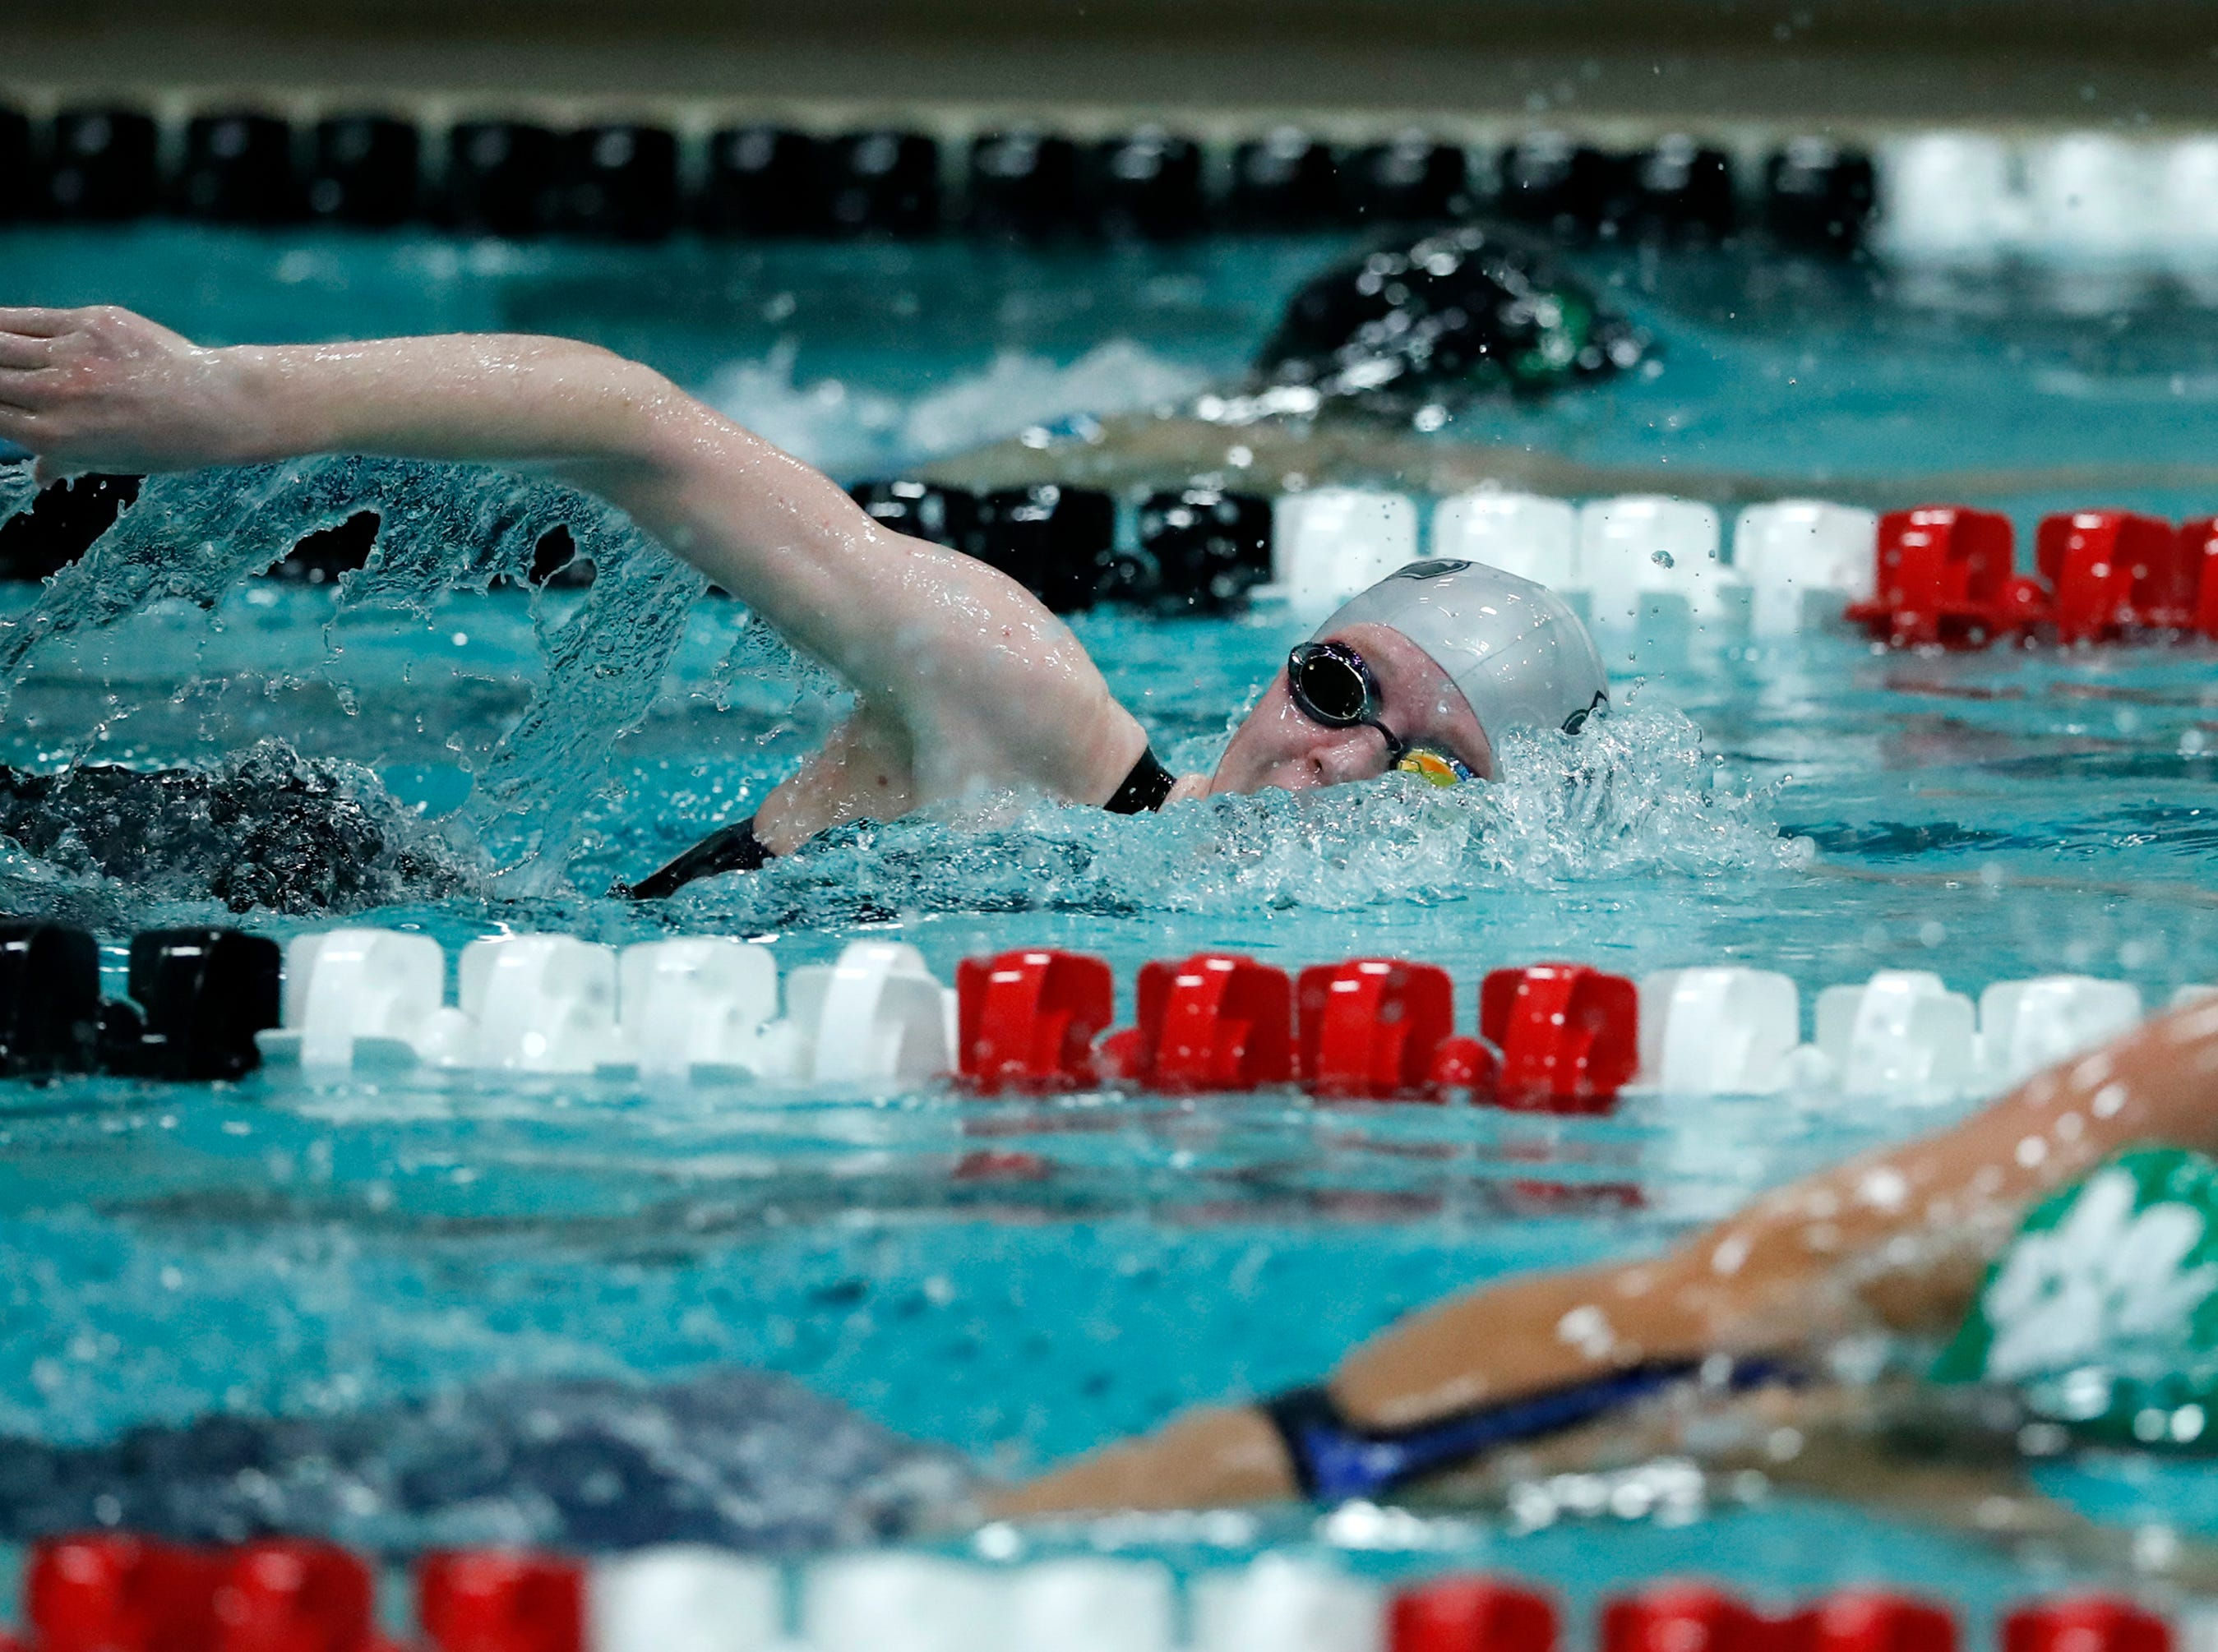 Merrill's Trinity Kanitz races in the 500 yard freestyle during the WIAA Division 2 State Swimming and Diving meet Friday, Nov. 9, 2018, at the UW Natatorium in Madison, Wis.Danny Damiani/USA TODAY NETWORK-Wisconsin